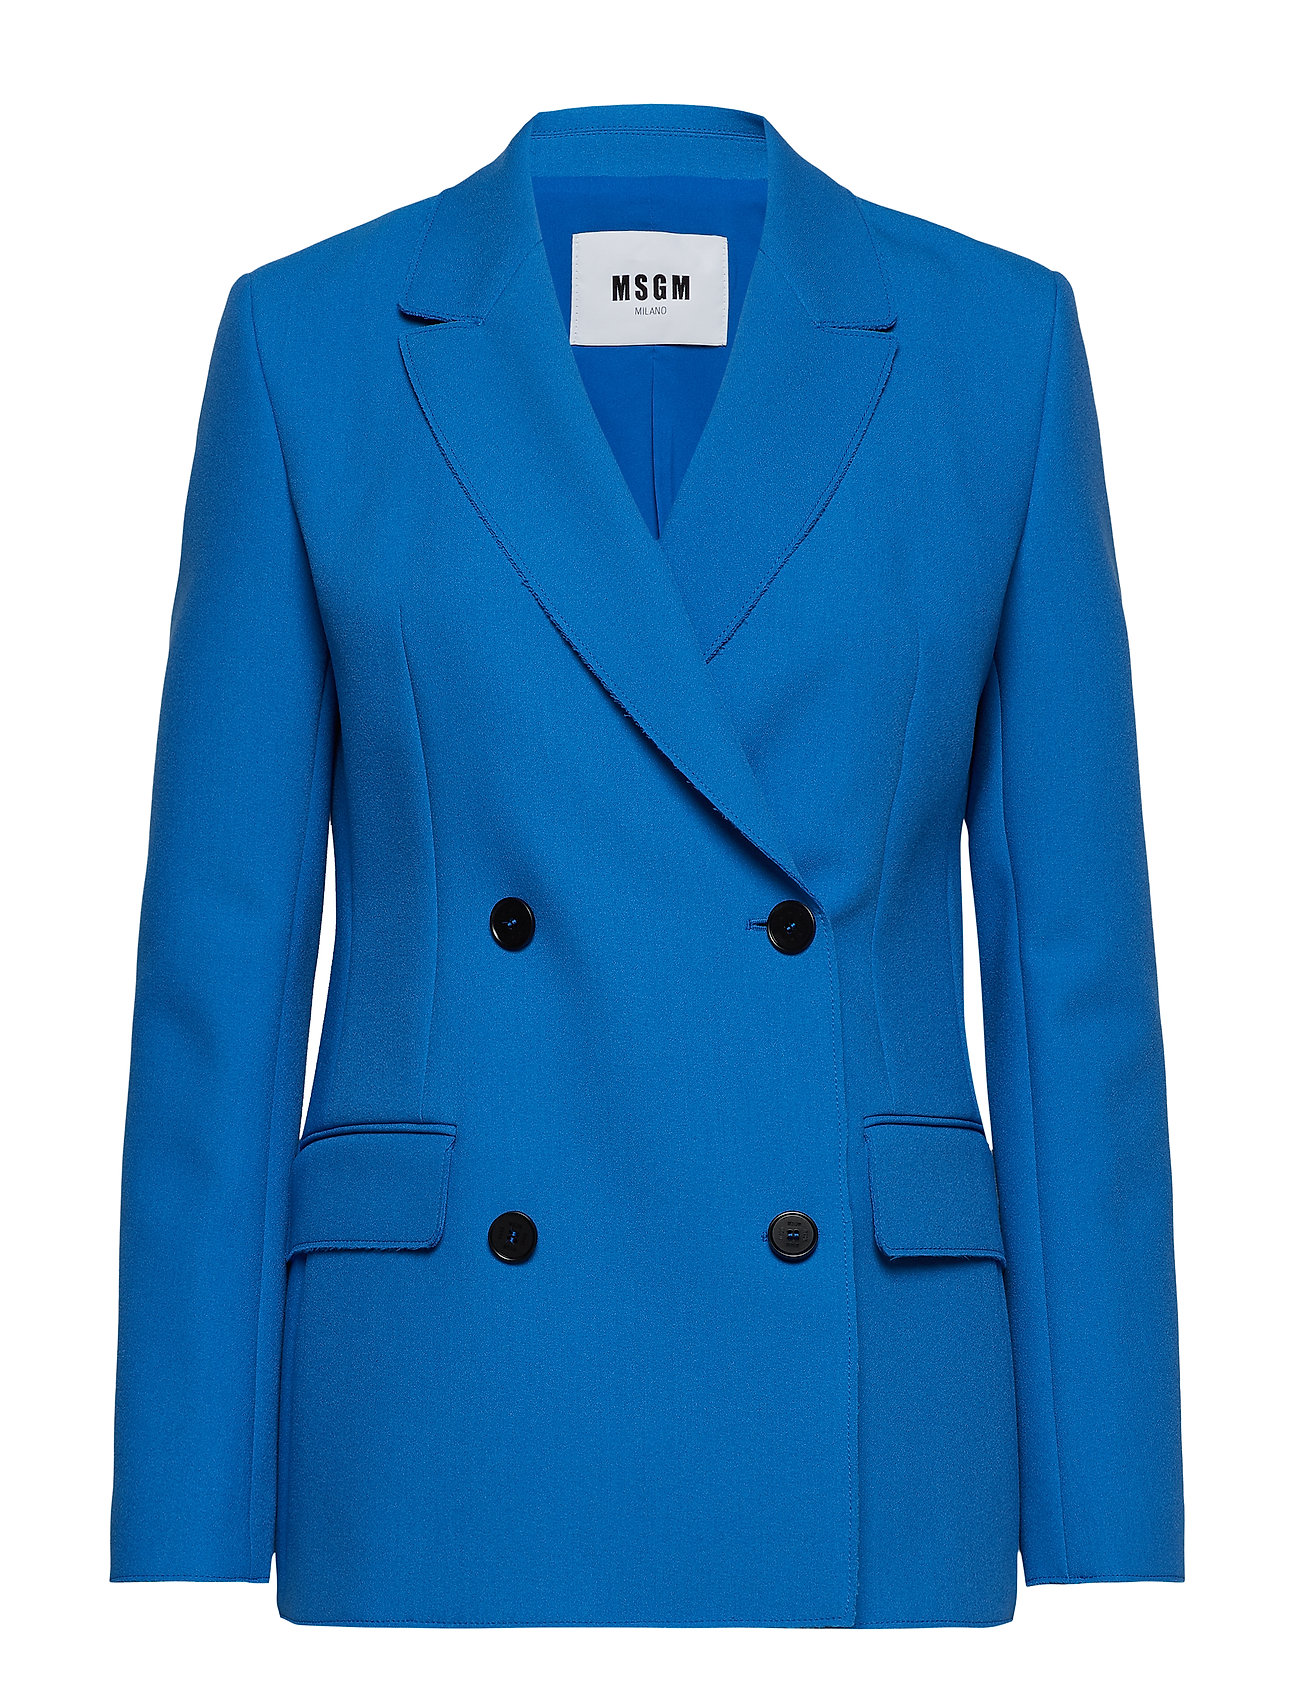 MSGM HEAVY DOUBLE CREPE CADY JACKET - BLUE